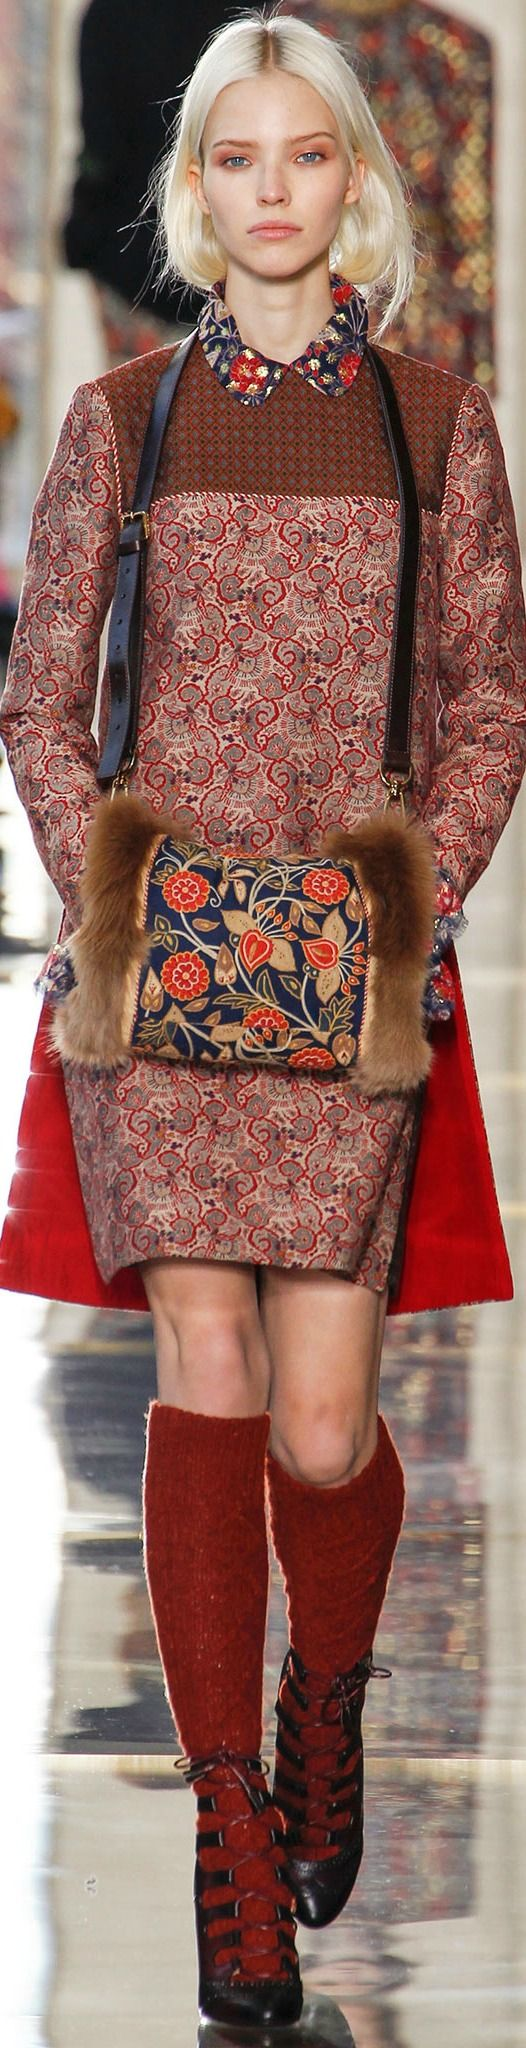 Tory Burch, RTW, Fall 2014, NYFW, New York City,